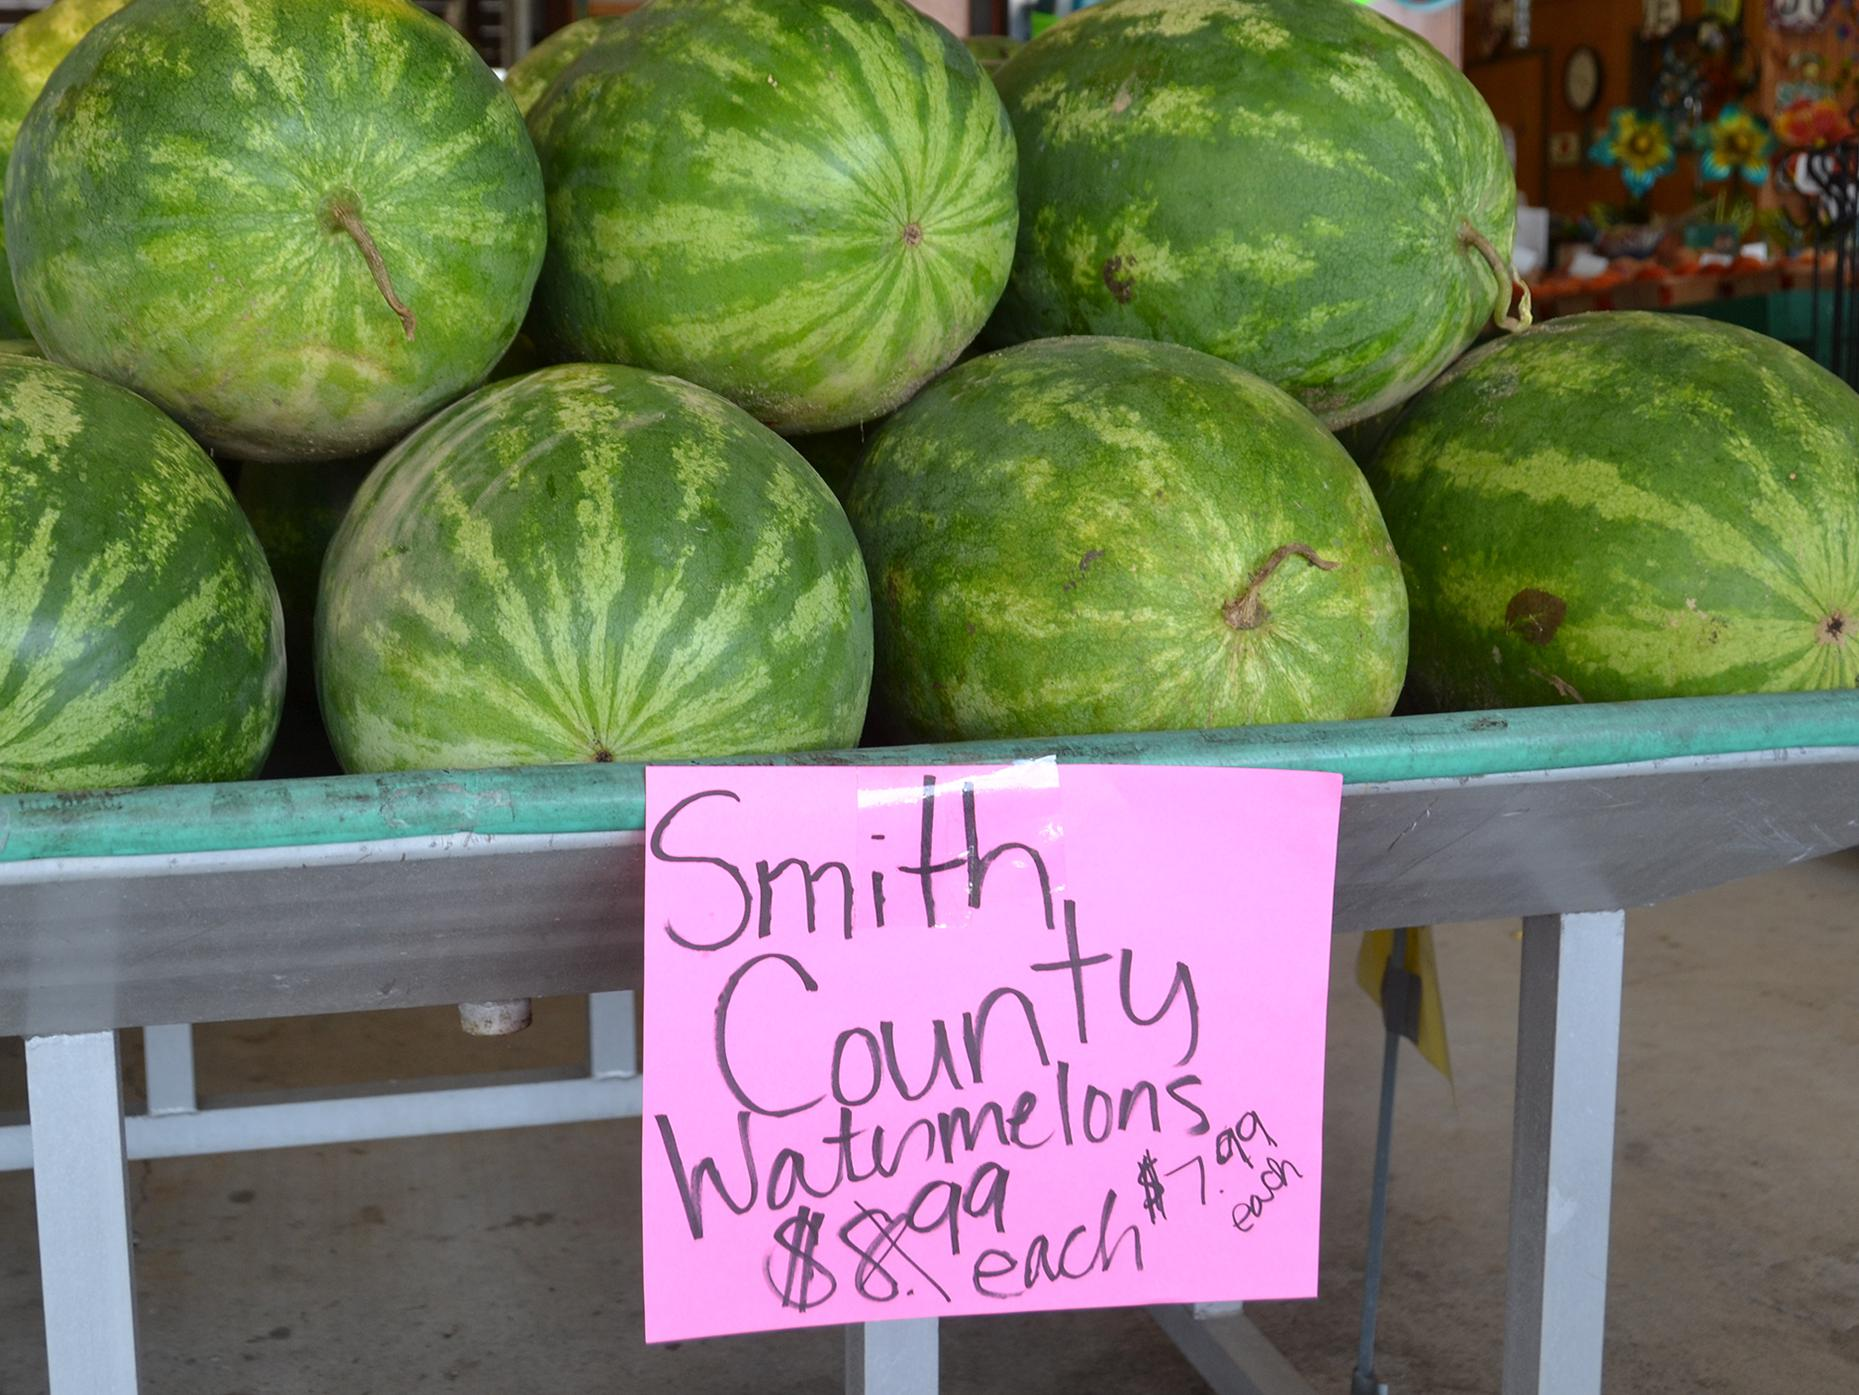 Consumers can find Mississippi-grown watermelons for their summer celebrations at stores and markets across the state, including these at the Byram Farmers Market in Byram, Mississippi, on June 27, 2017. (Photo by MSU Extension Service/Susan Collins-Smith)